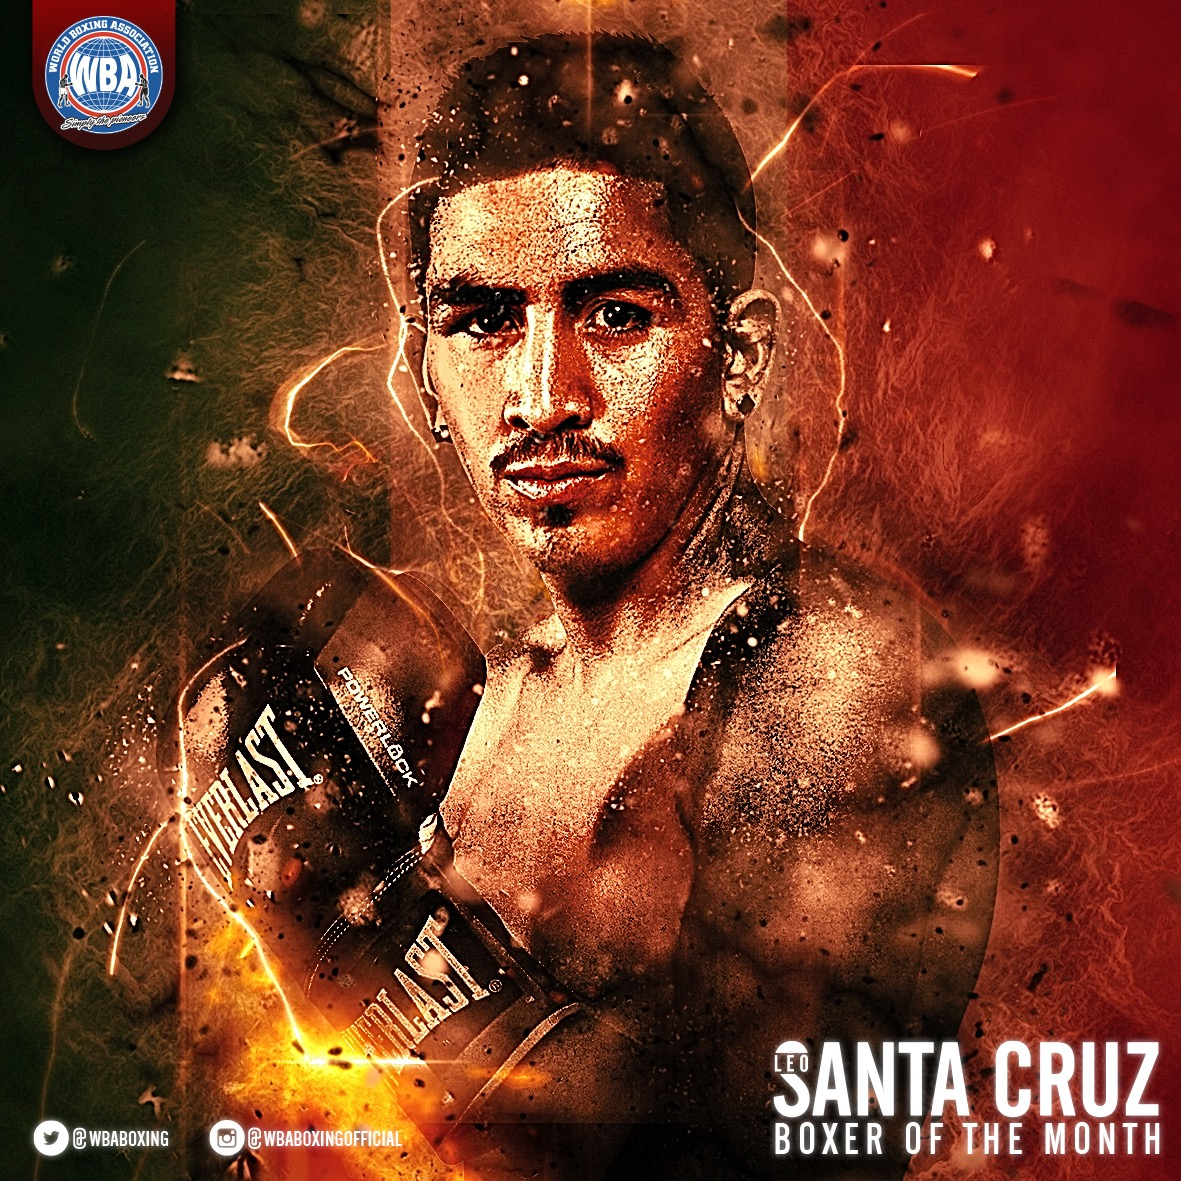 Leo Santa Cruz WBA Featherweight Super Champion - Boxer of the Month - January 2017